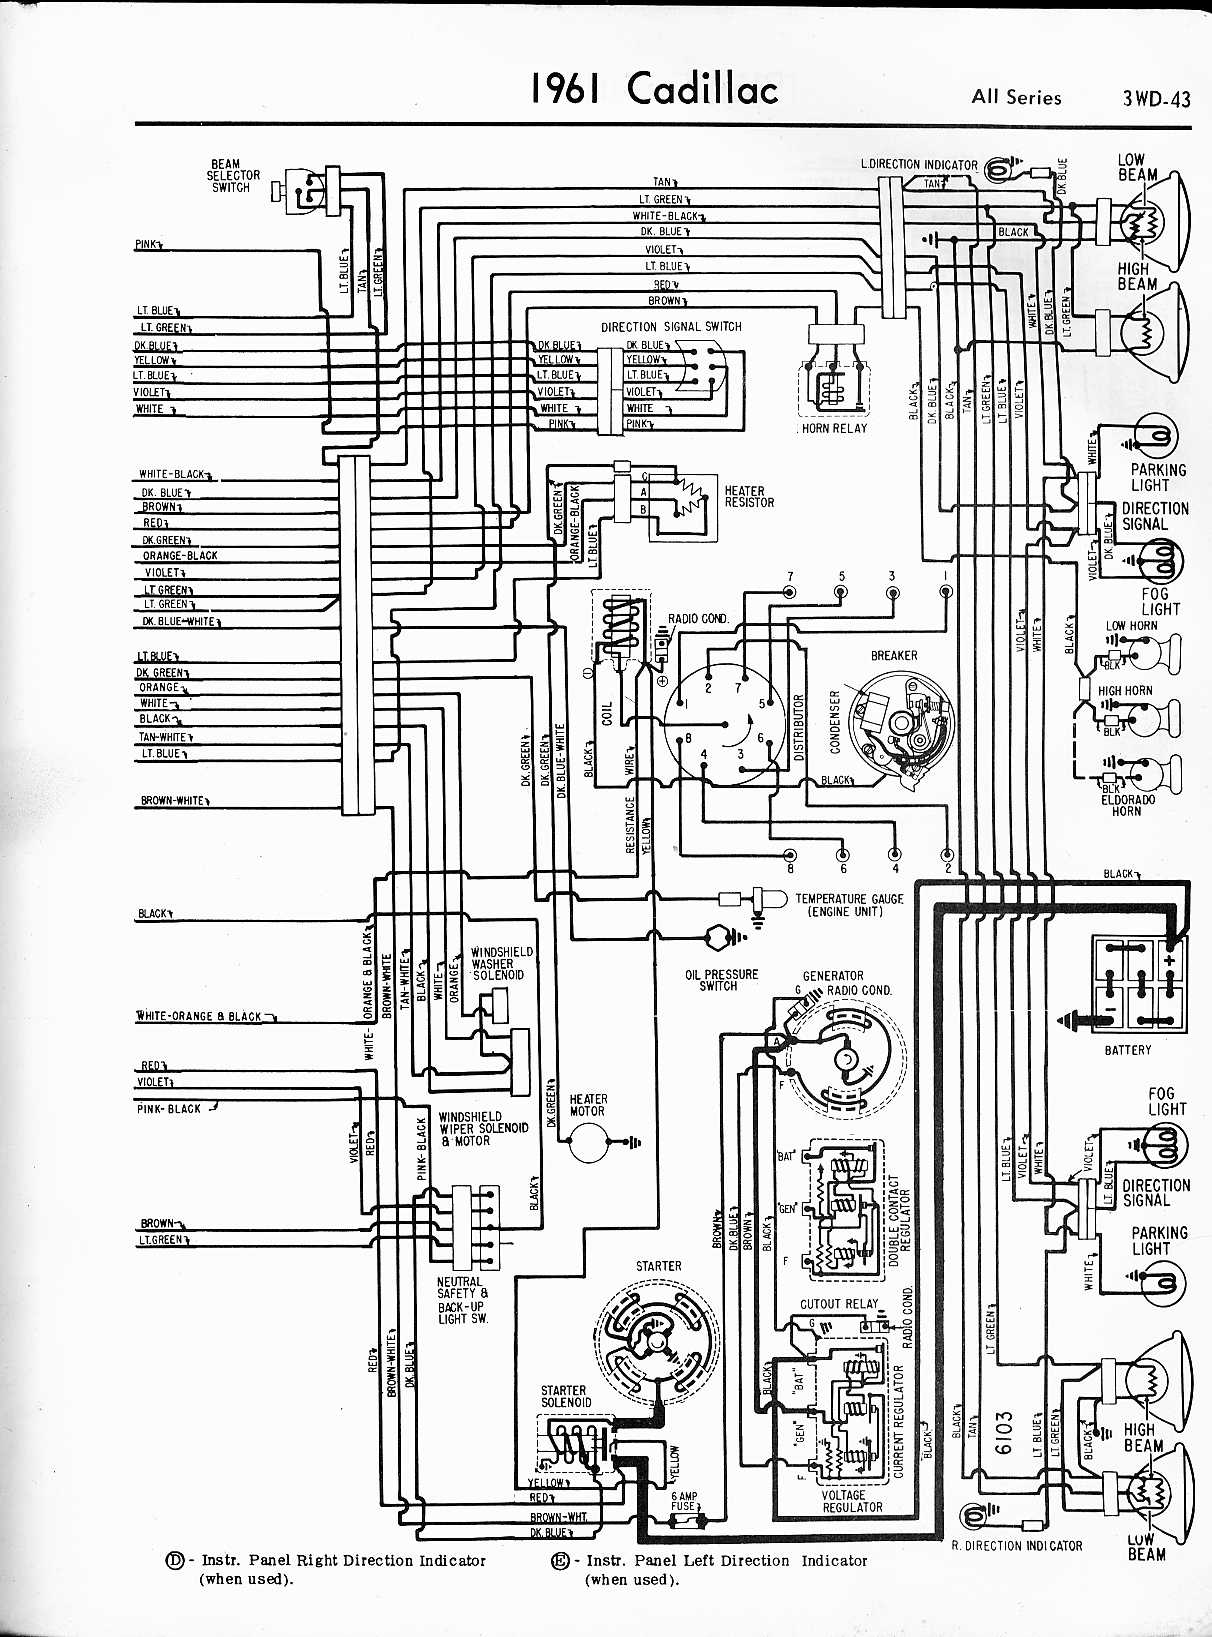 Mwirecadi Wd together with Columnrebuild in addition Sm Big besides Lrg in addition Pros Pic B X. on 1965 cadillac wiring diagram